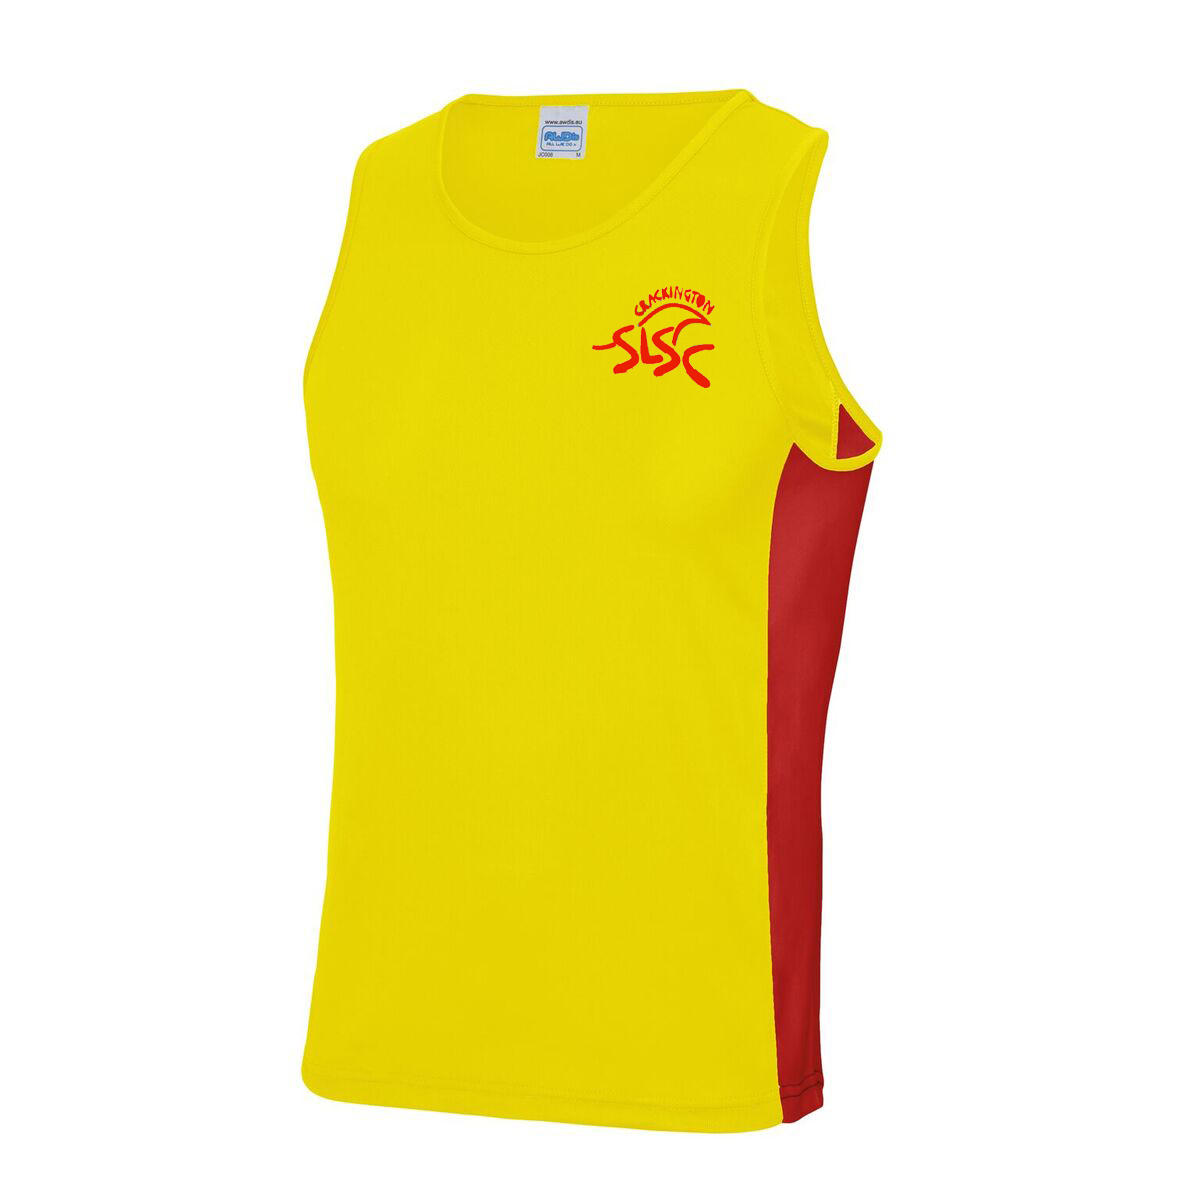 Crackington SLSC Sports Vest